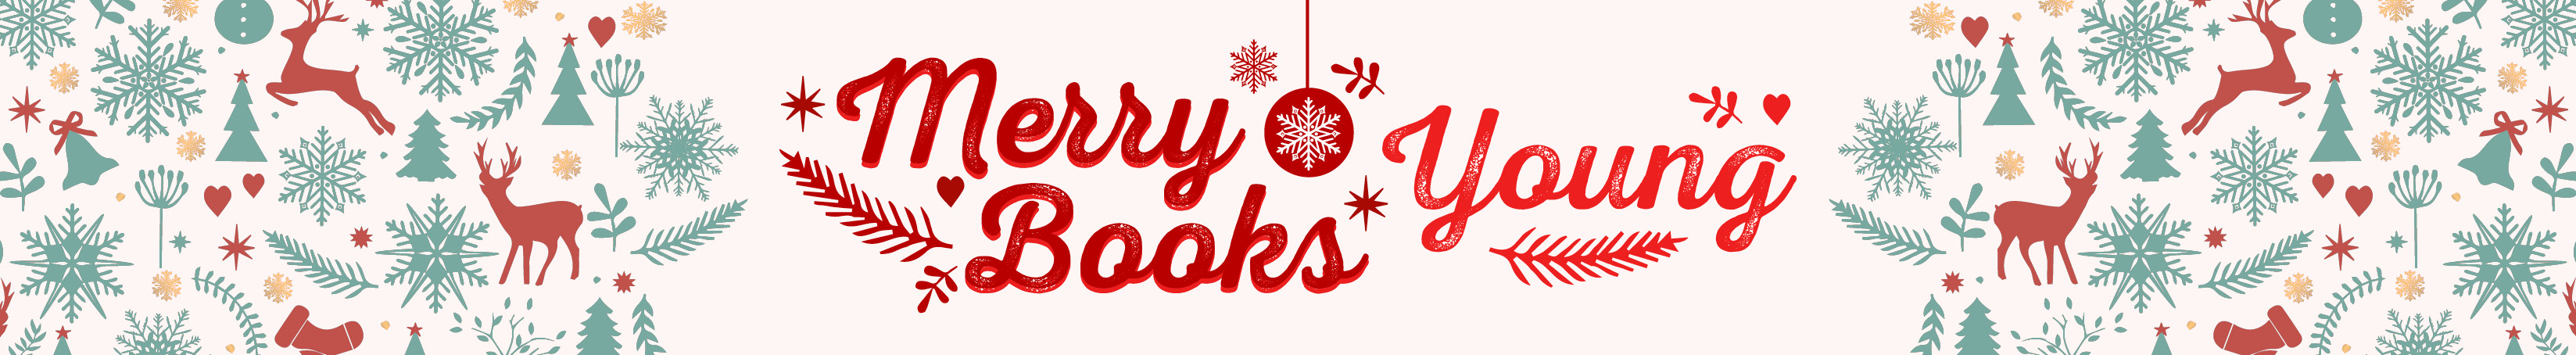 Merry Books_young